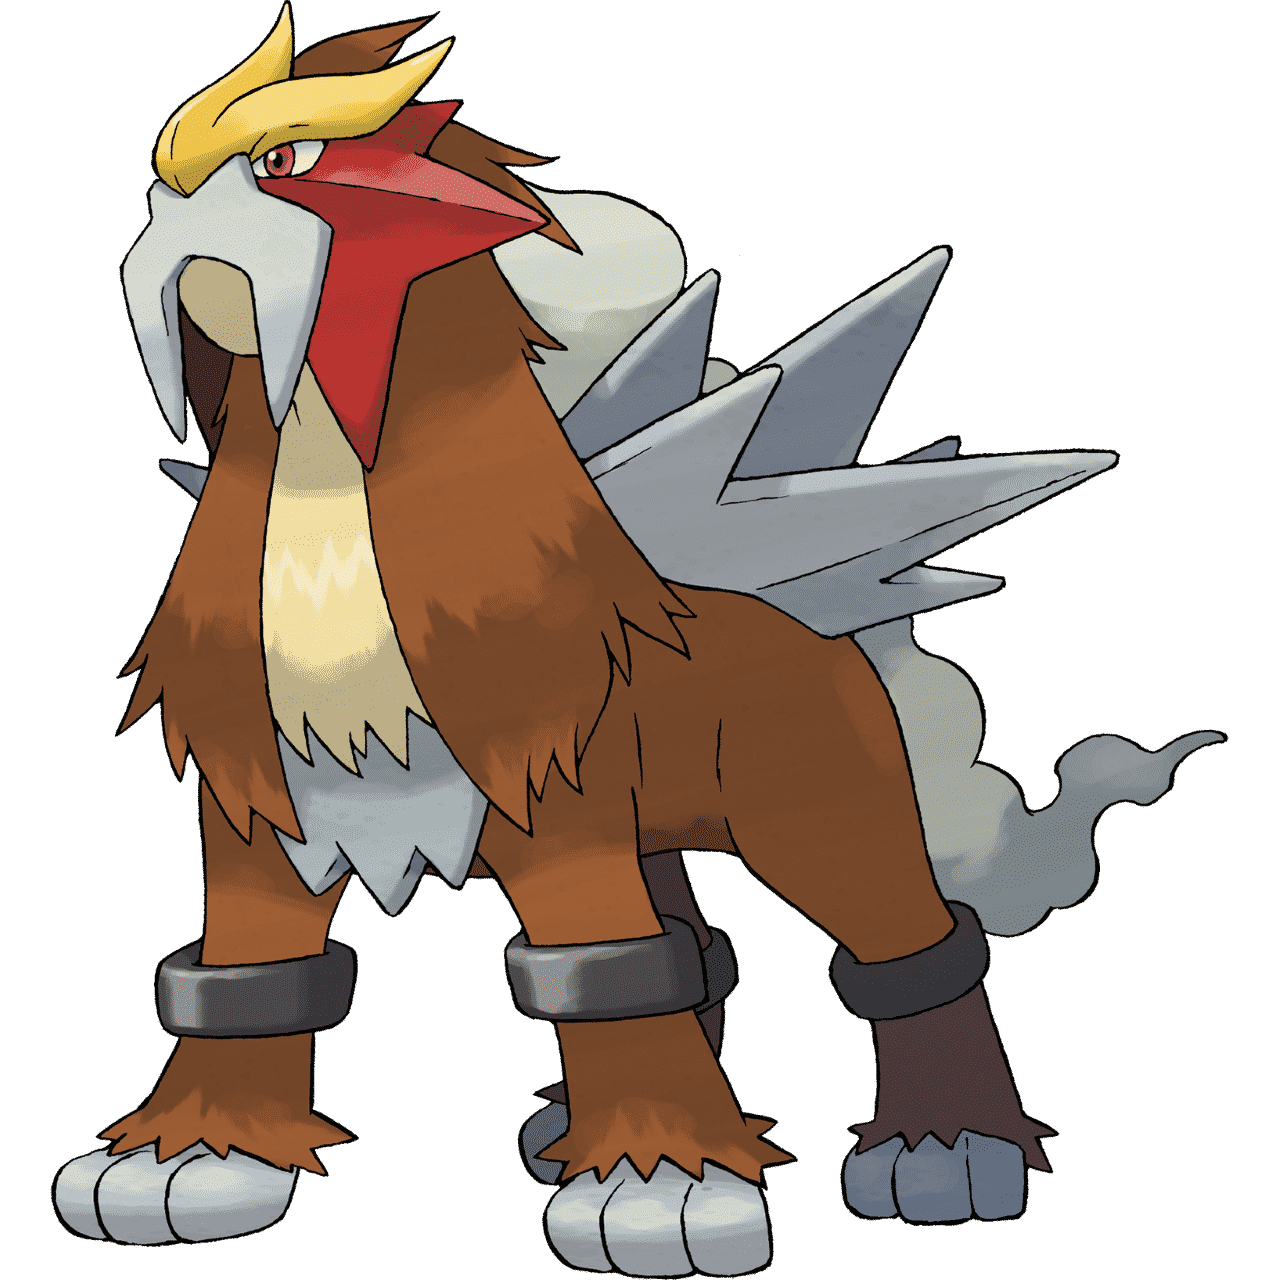 Pokémon Artwork Entei